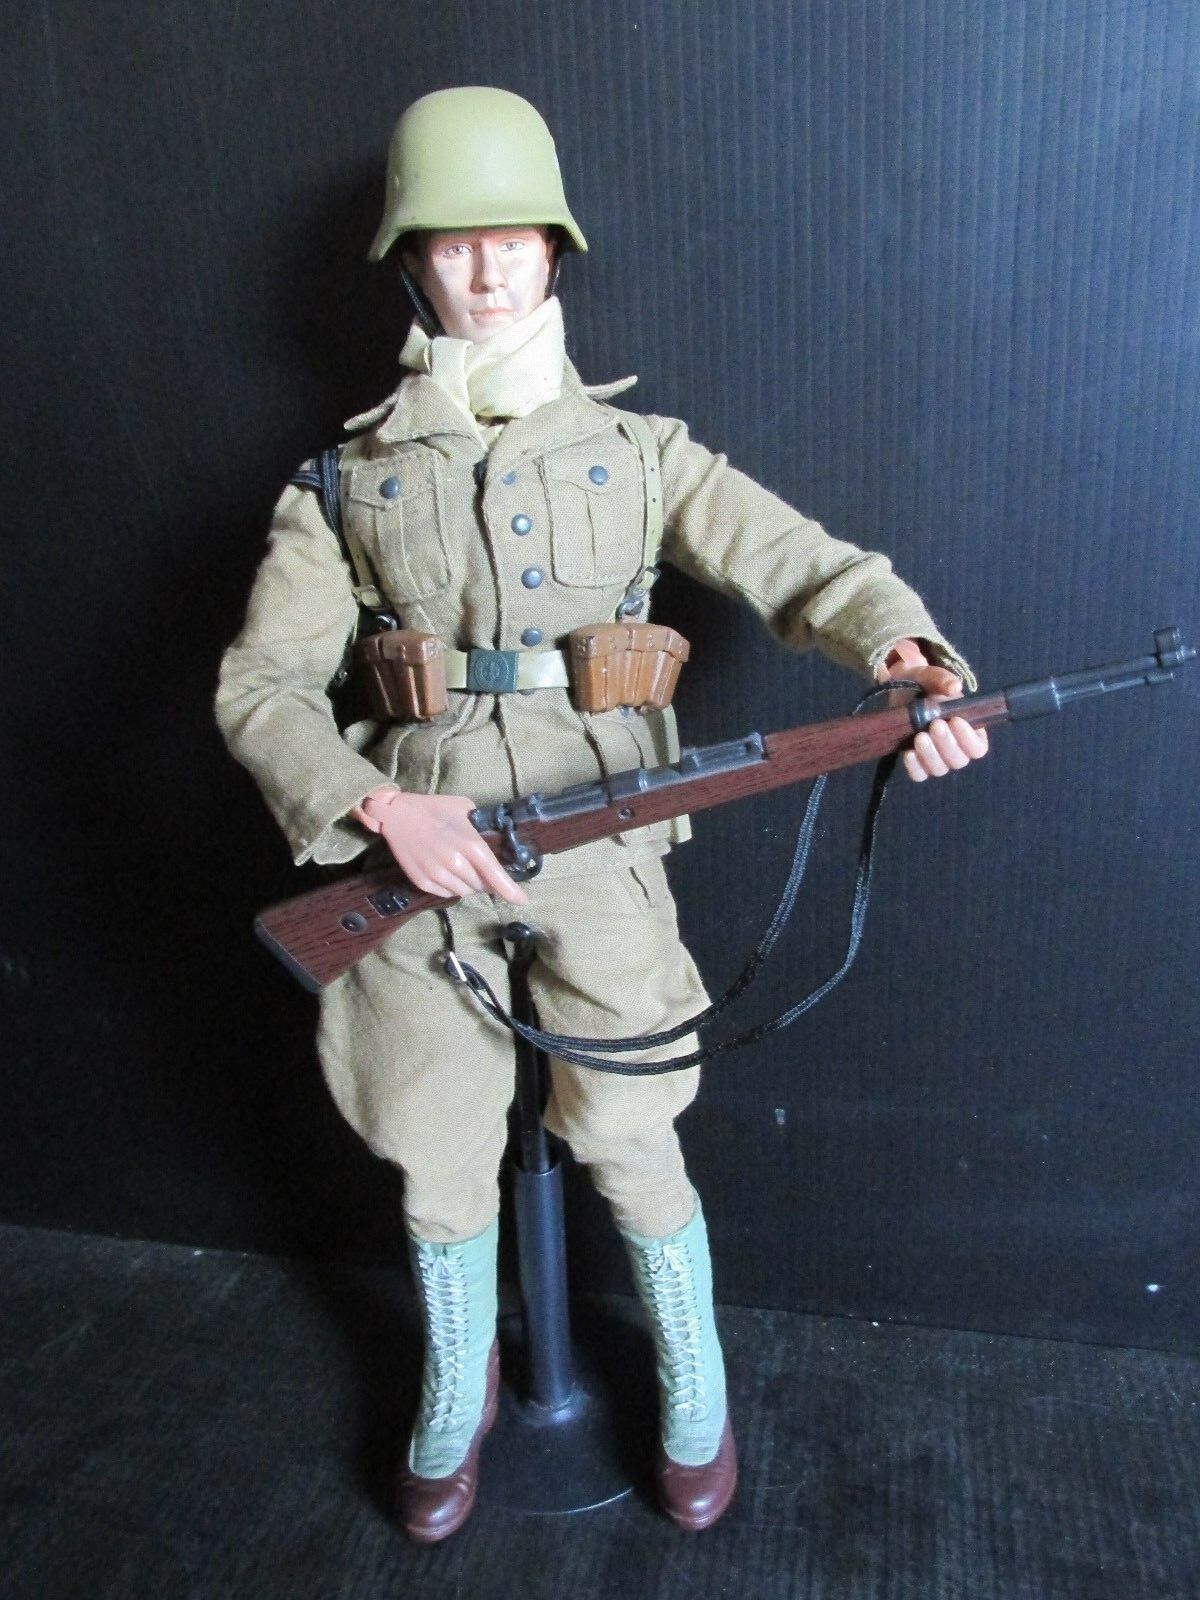 Dragon+ 1 6th scale Action figures WW11 AFRIKA CORPS SOLDIER (9)